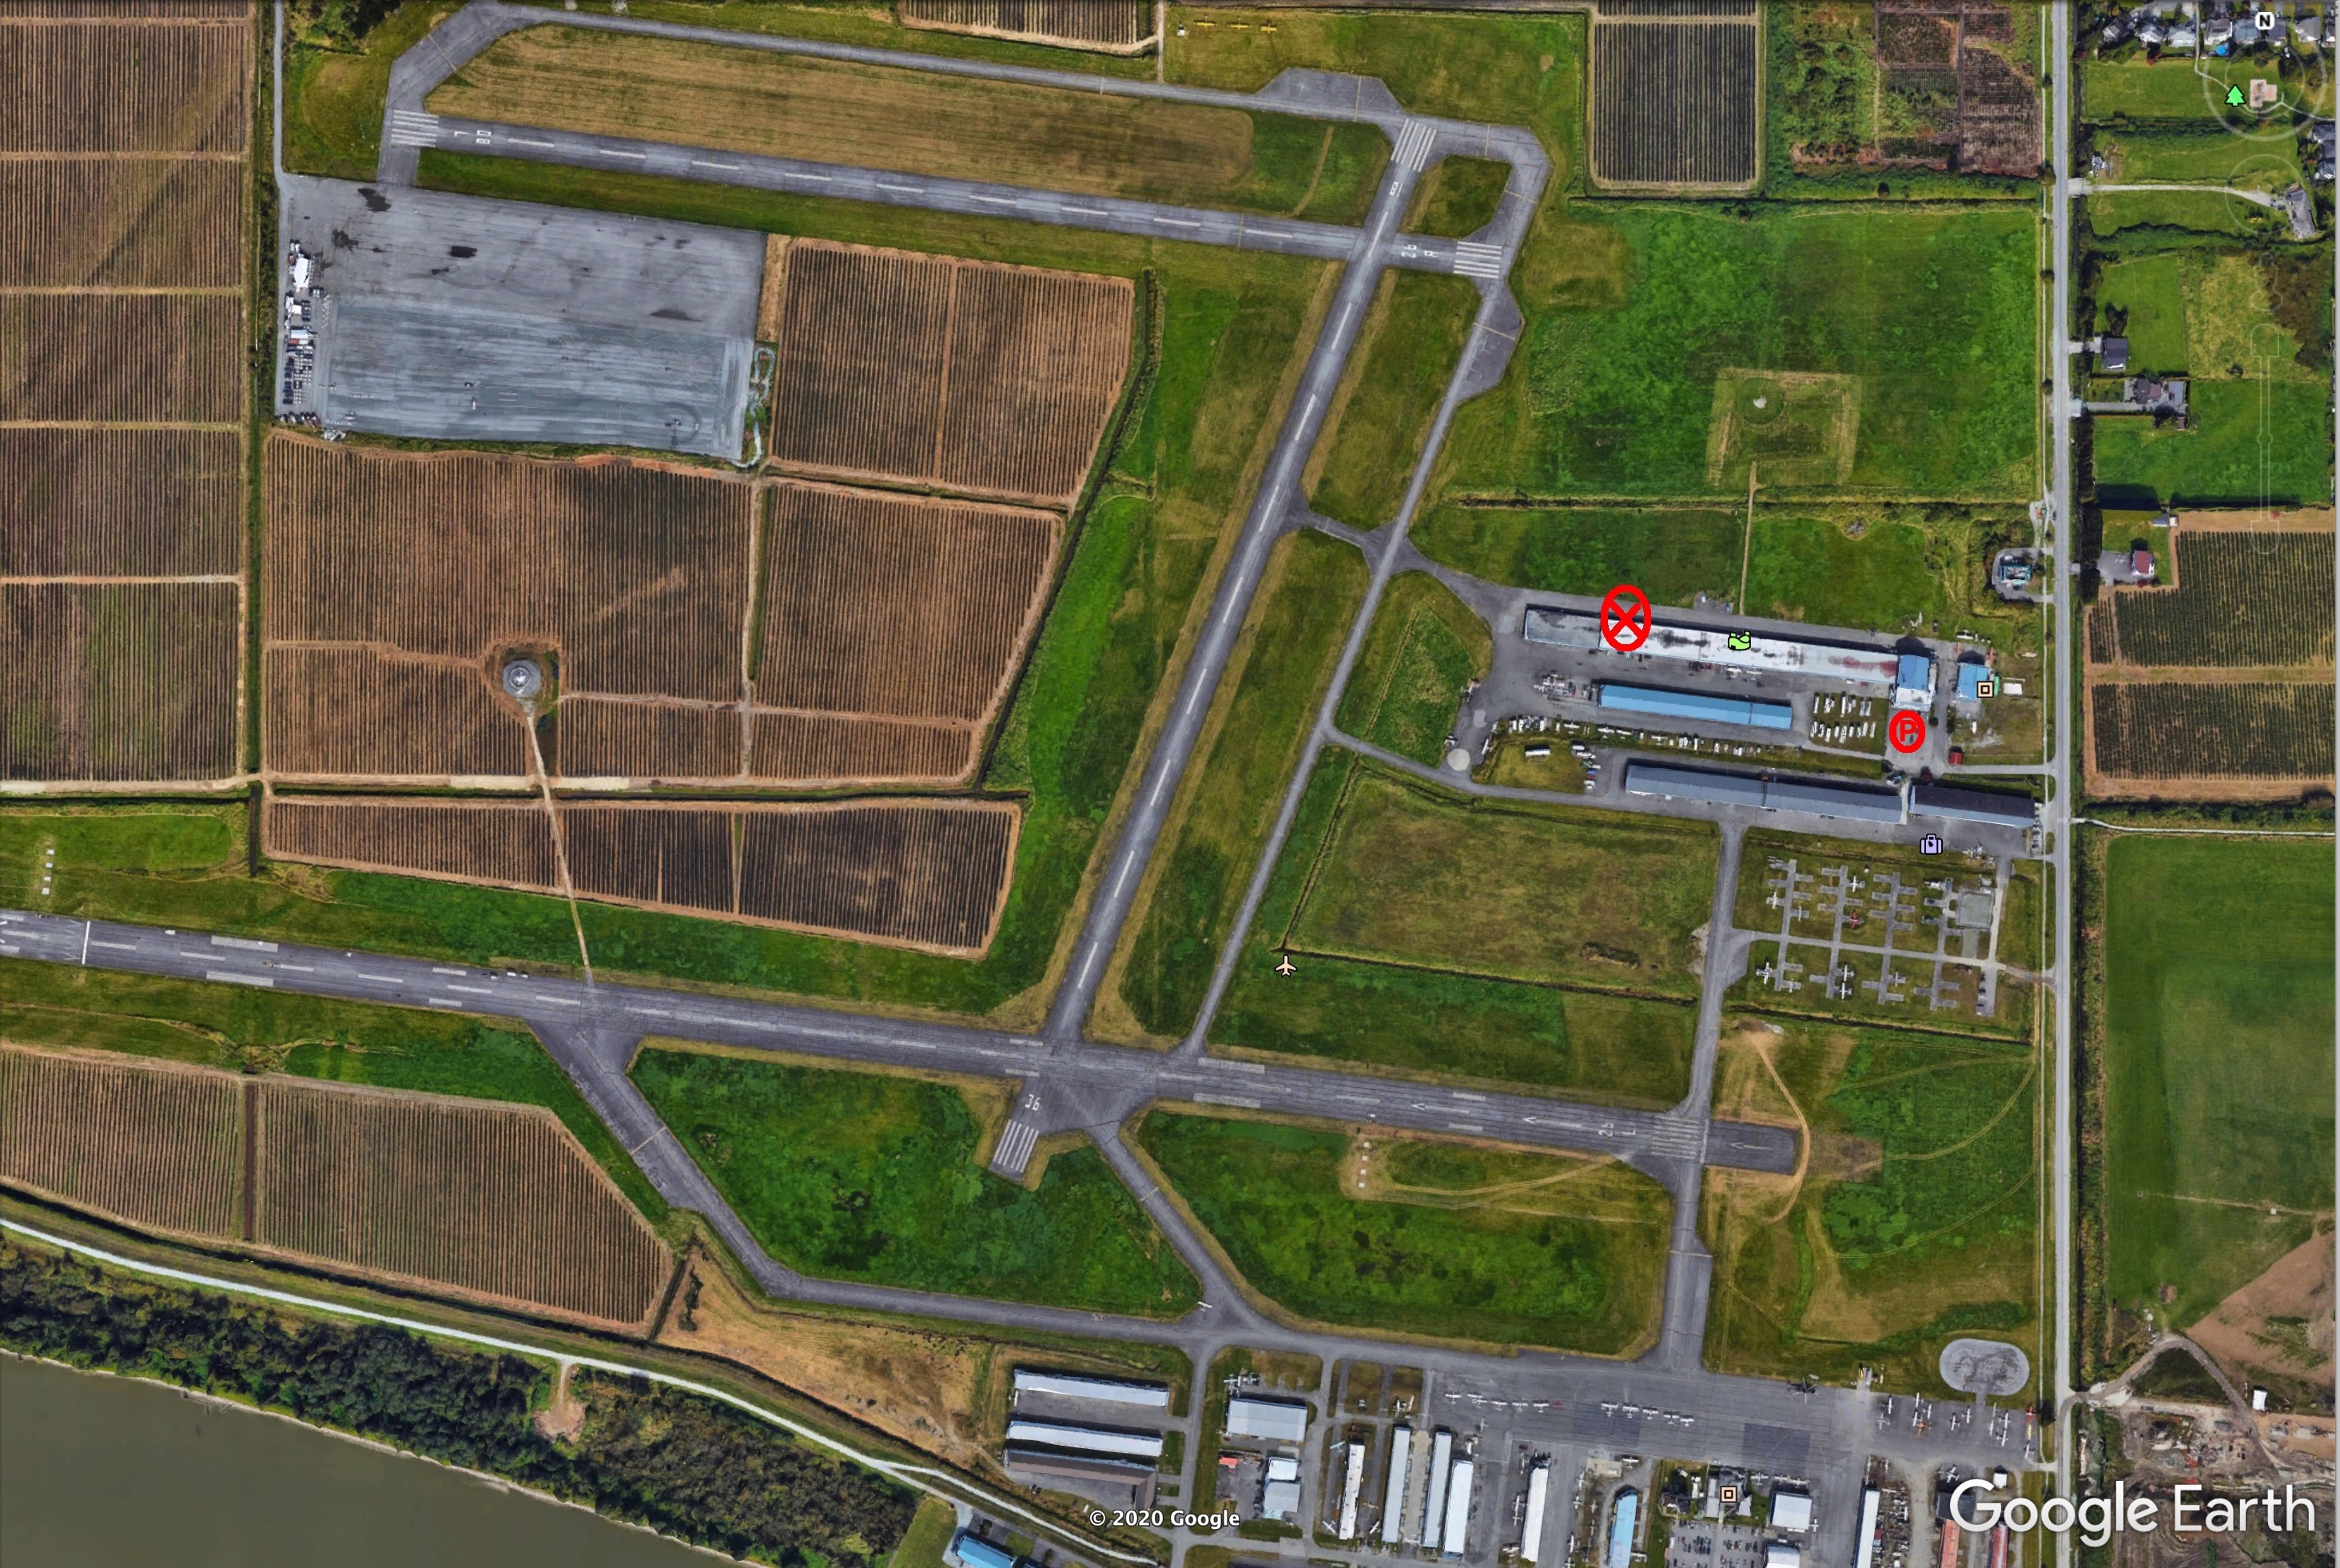 Satellite GoogleEarth Image of Silverwing Aviation Hangar